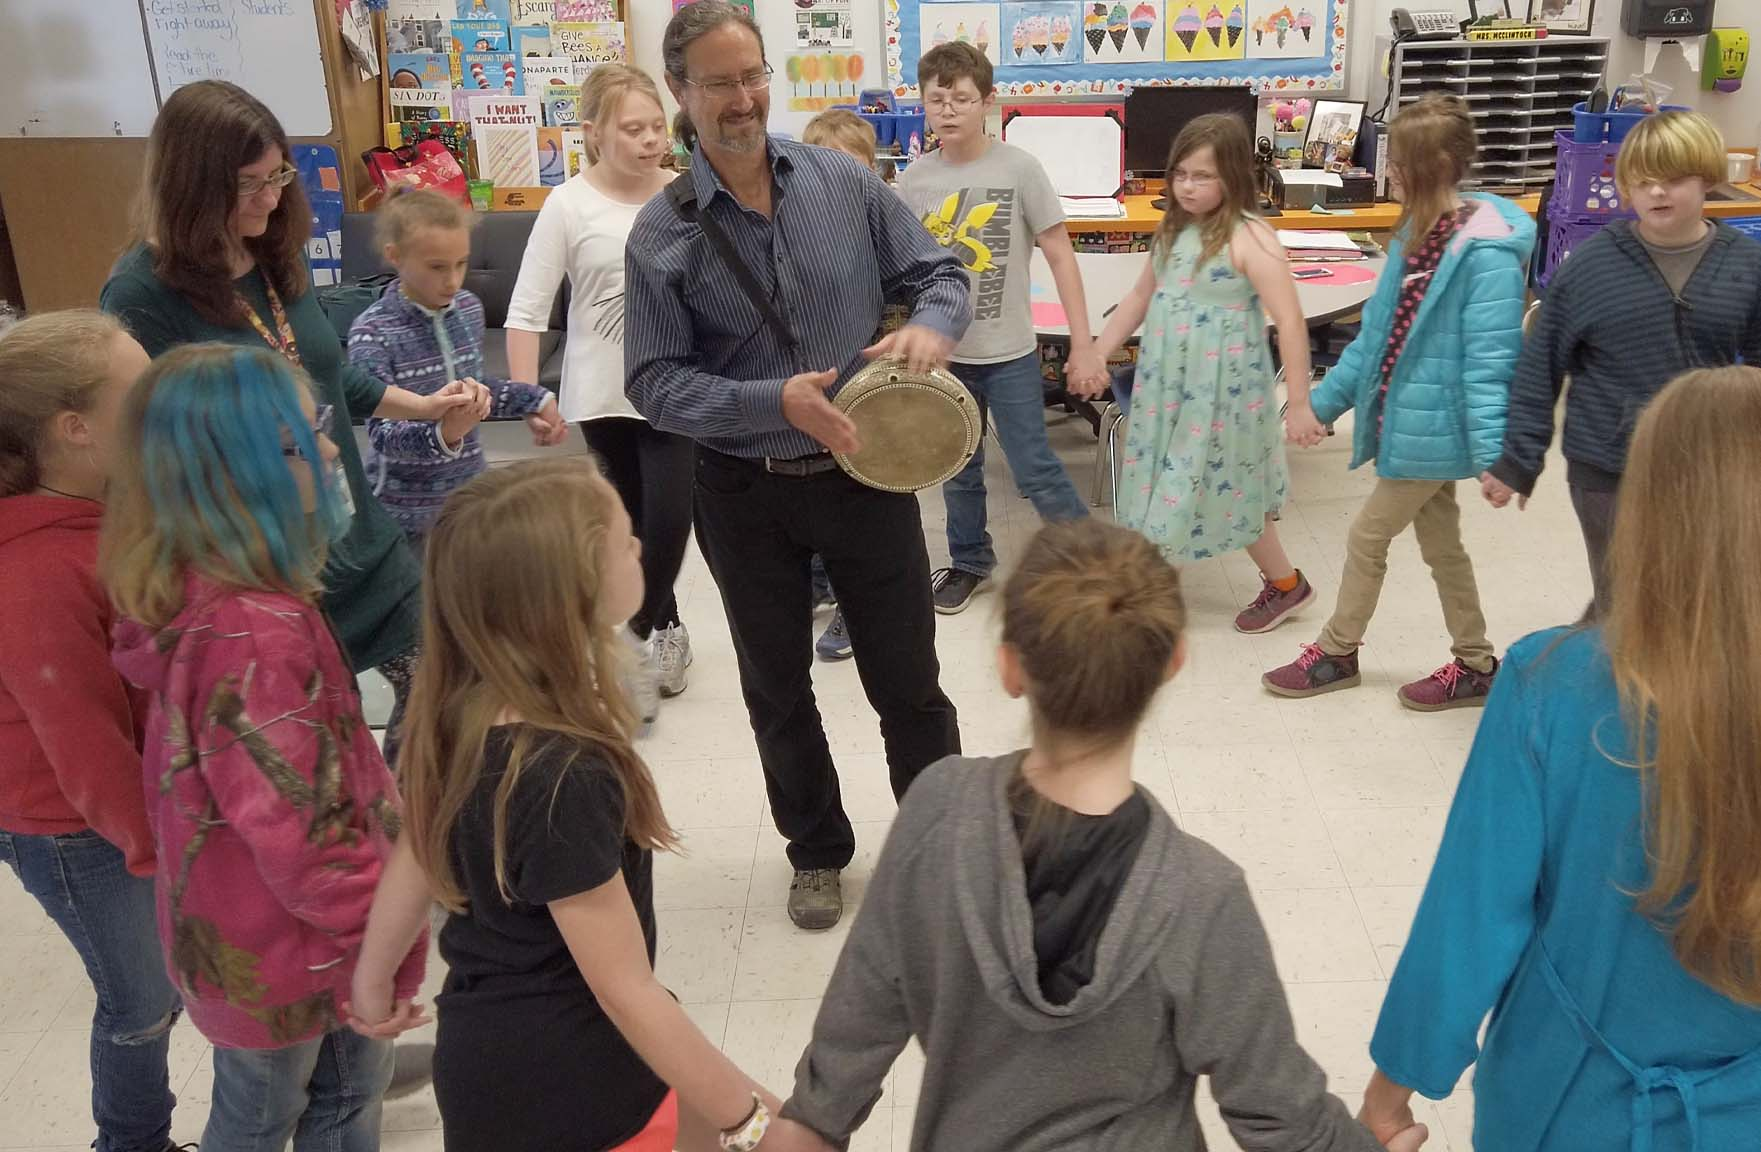 Artist Robert Peak teaching Mid East drumming and dance to grade 3 students